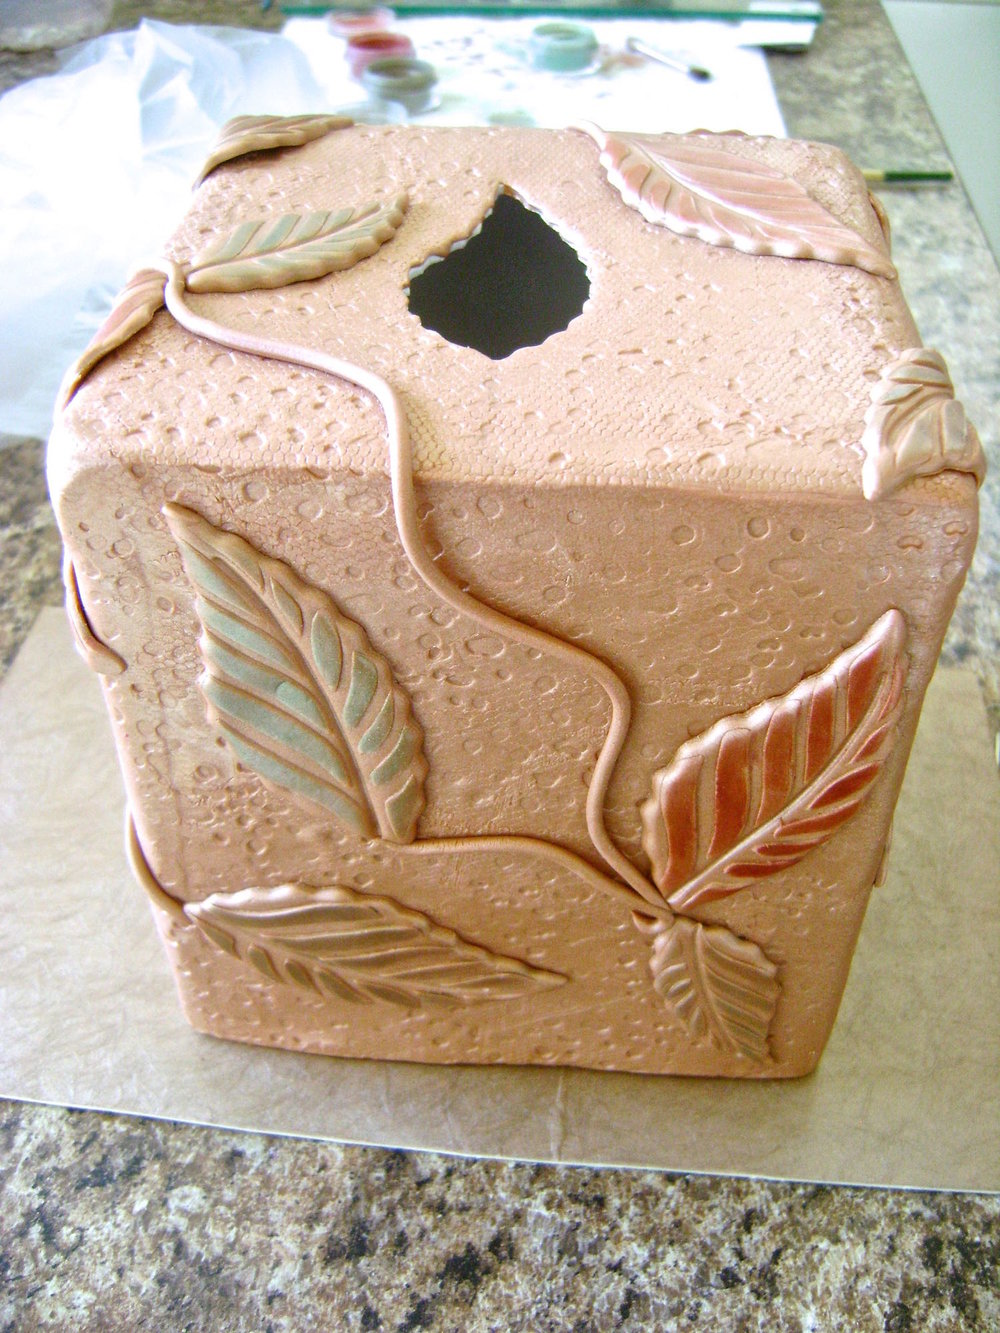 step 11 - Arrange the leavesand vines on the clay box, pressing them gently enough not to distort the design.